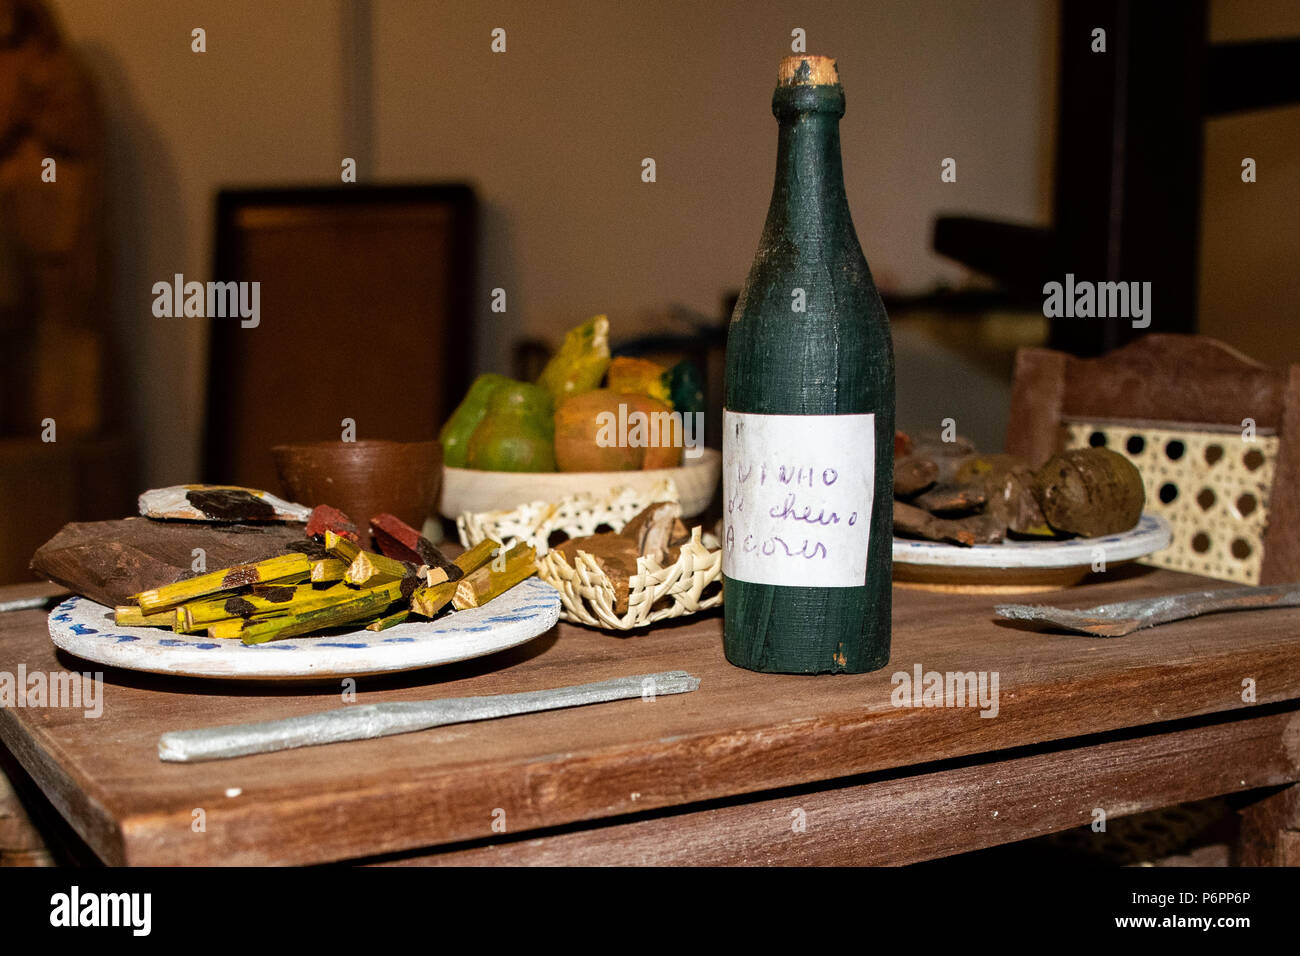 Miniature wooden dinner table - Stock Image